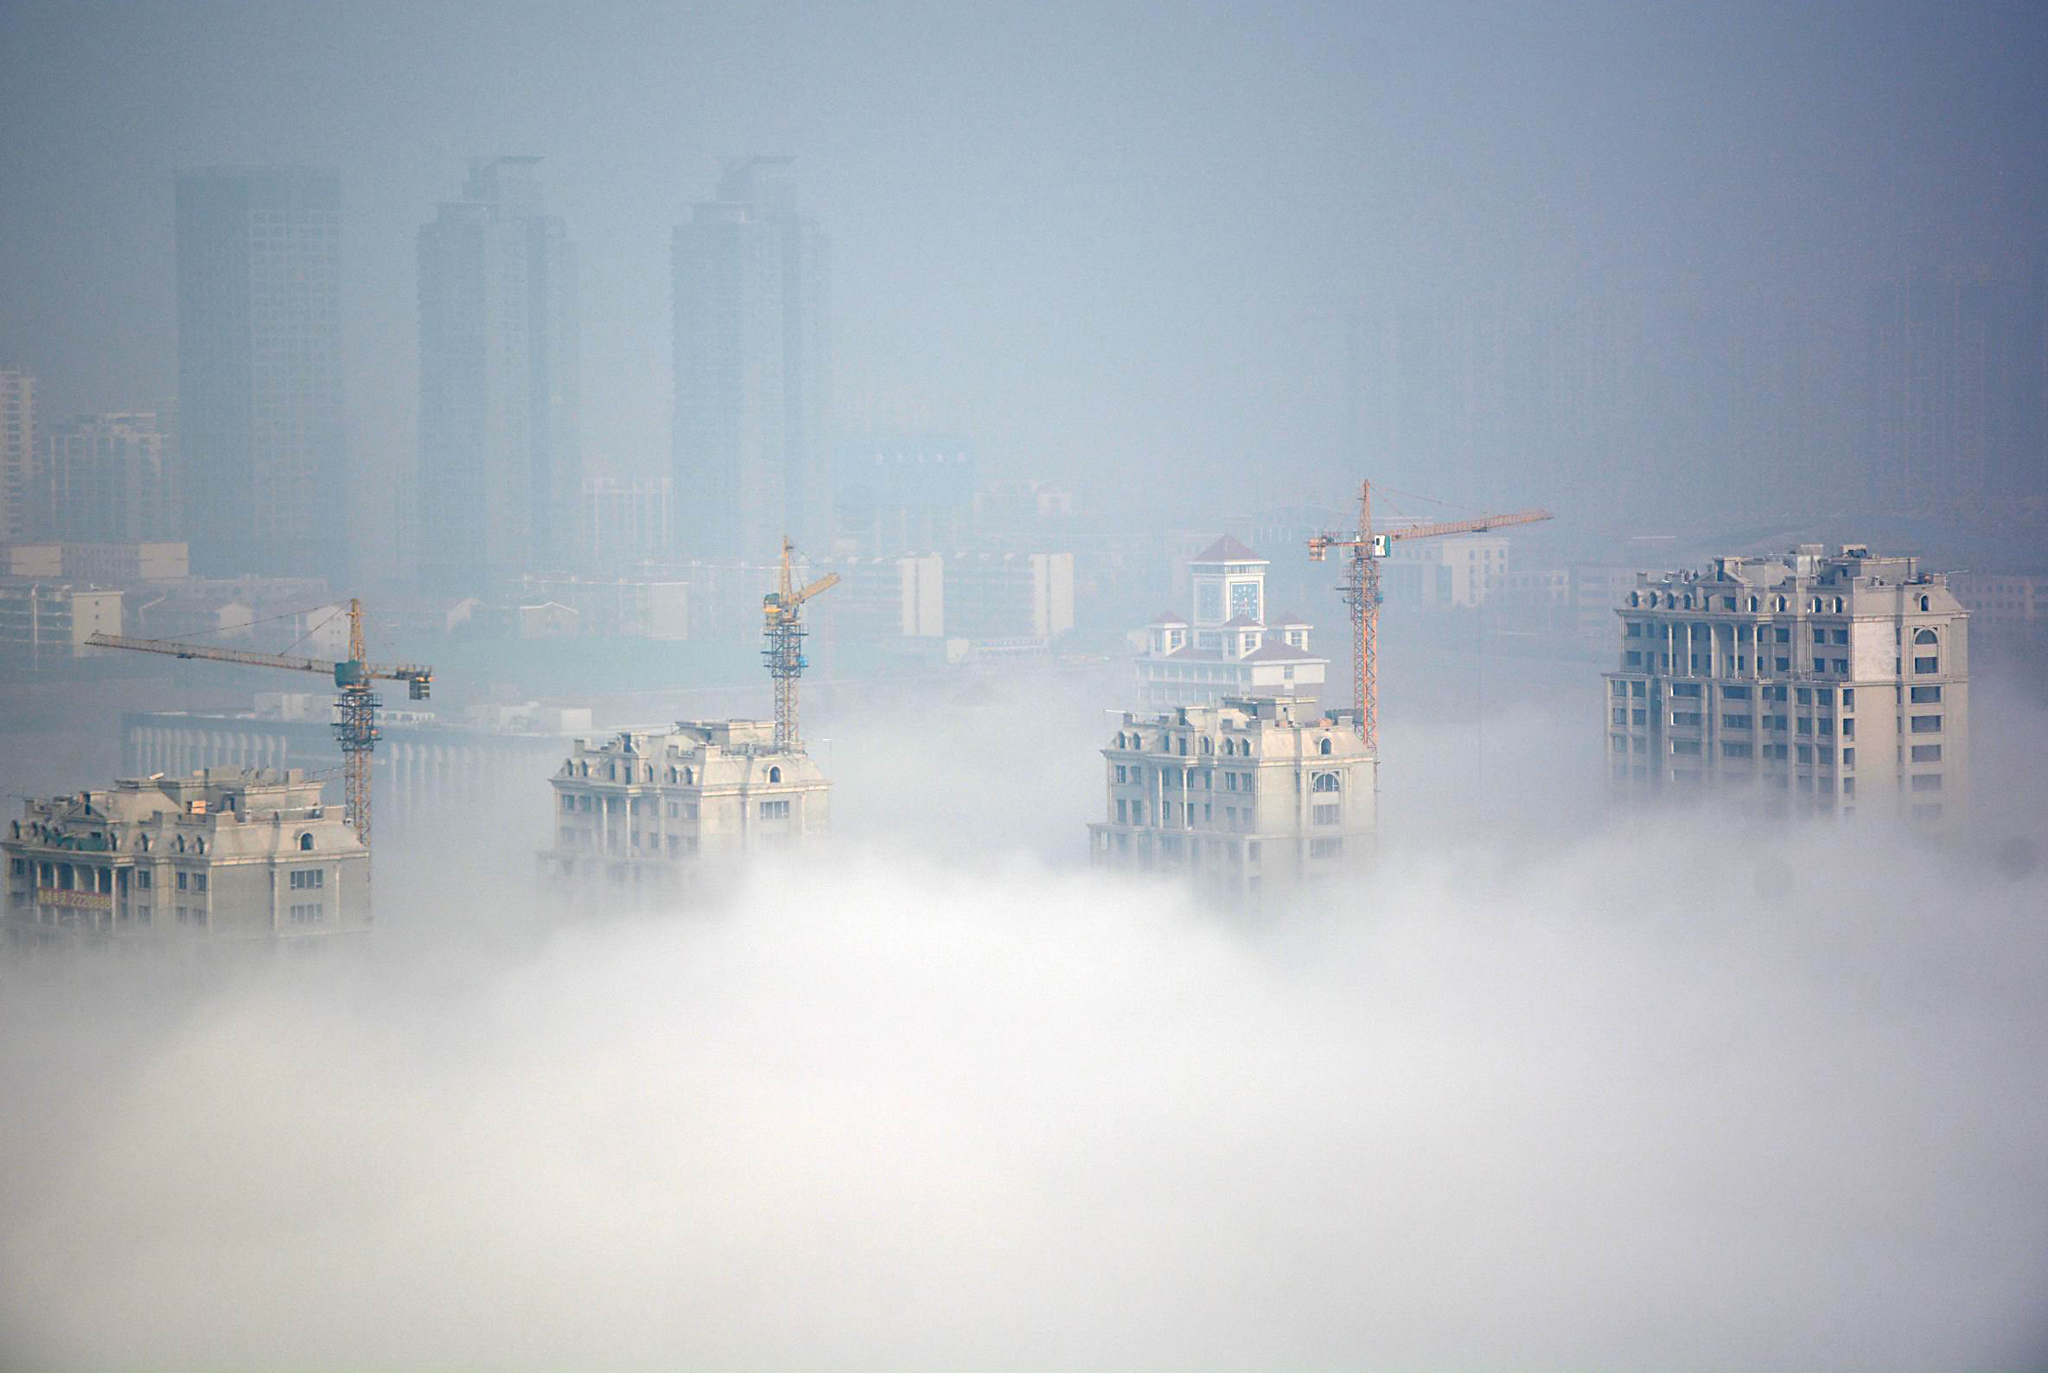 Buildings under construction are seen during a hazy day in Rizhao...Buildings under construction are seen during a hazy day in Rizhao, Shandong Province, China, March 15, 2016. REUTERS/Stringer ATTENTION EDITORS - THIS PICTURE WAS PROVIDED BY A THIRD PARTY. THIS PICTURE IS DISTRIBUTED EXACTLY AS RECEIVED BY REUTERS, AS A SERVICE TO CLIENTS. CHINA OUT. NO COMMERCIAL OR EDITORIAL SALES IN CHINA.       TPX IMAGES OF THE DAY